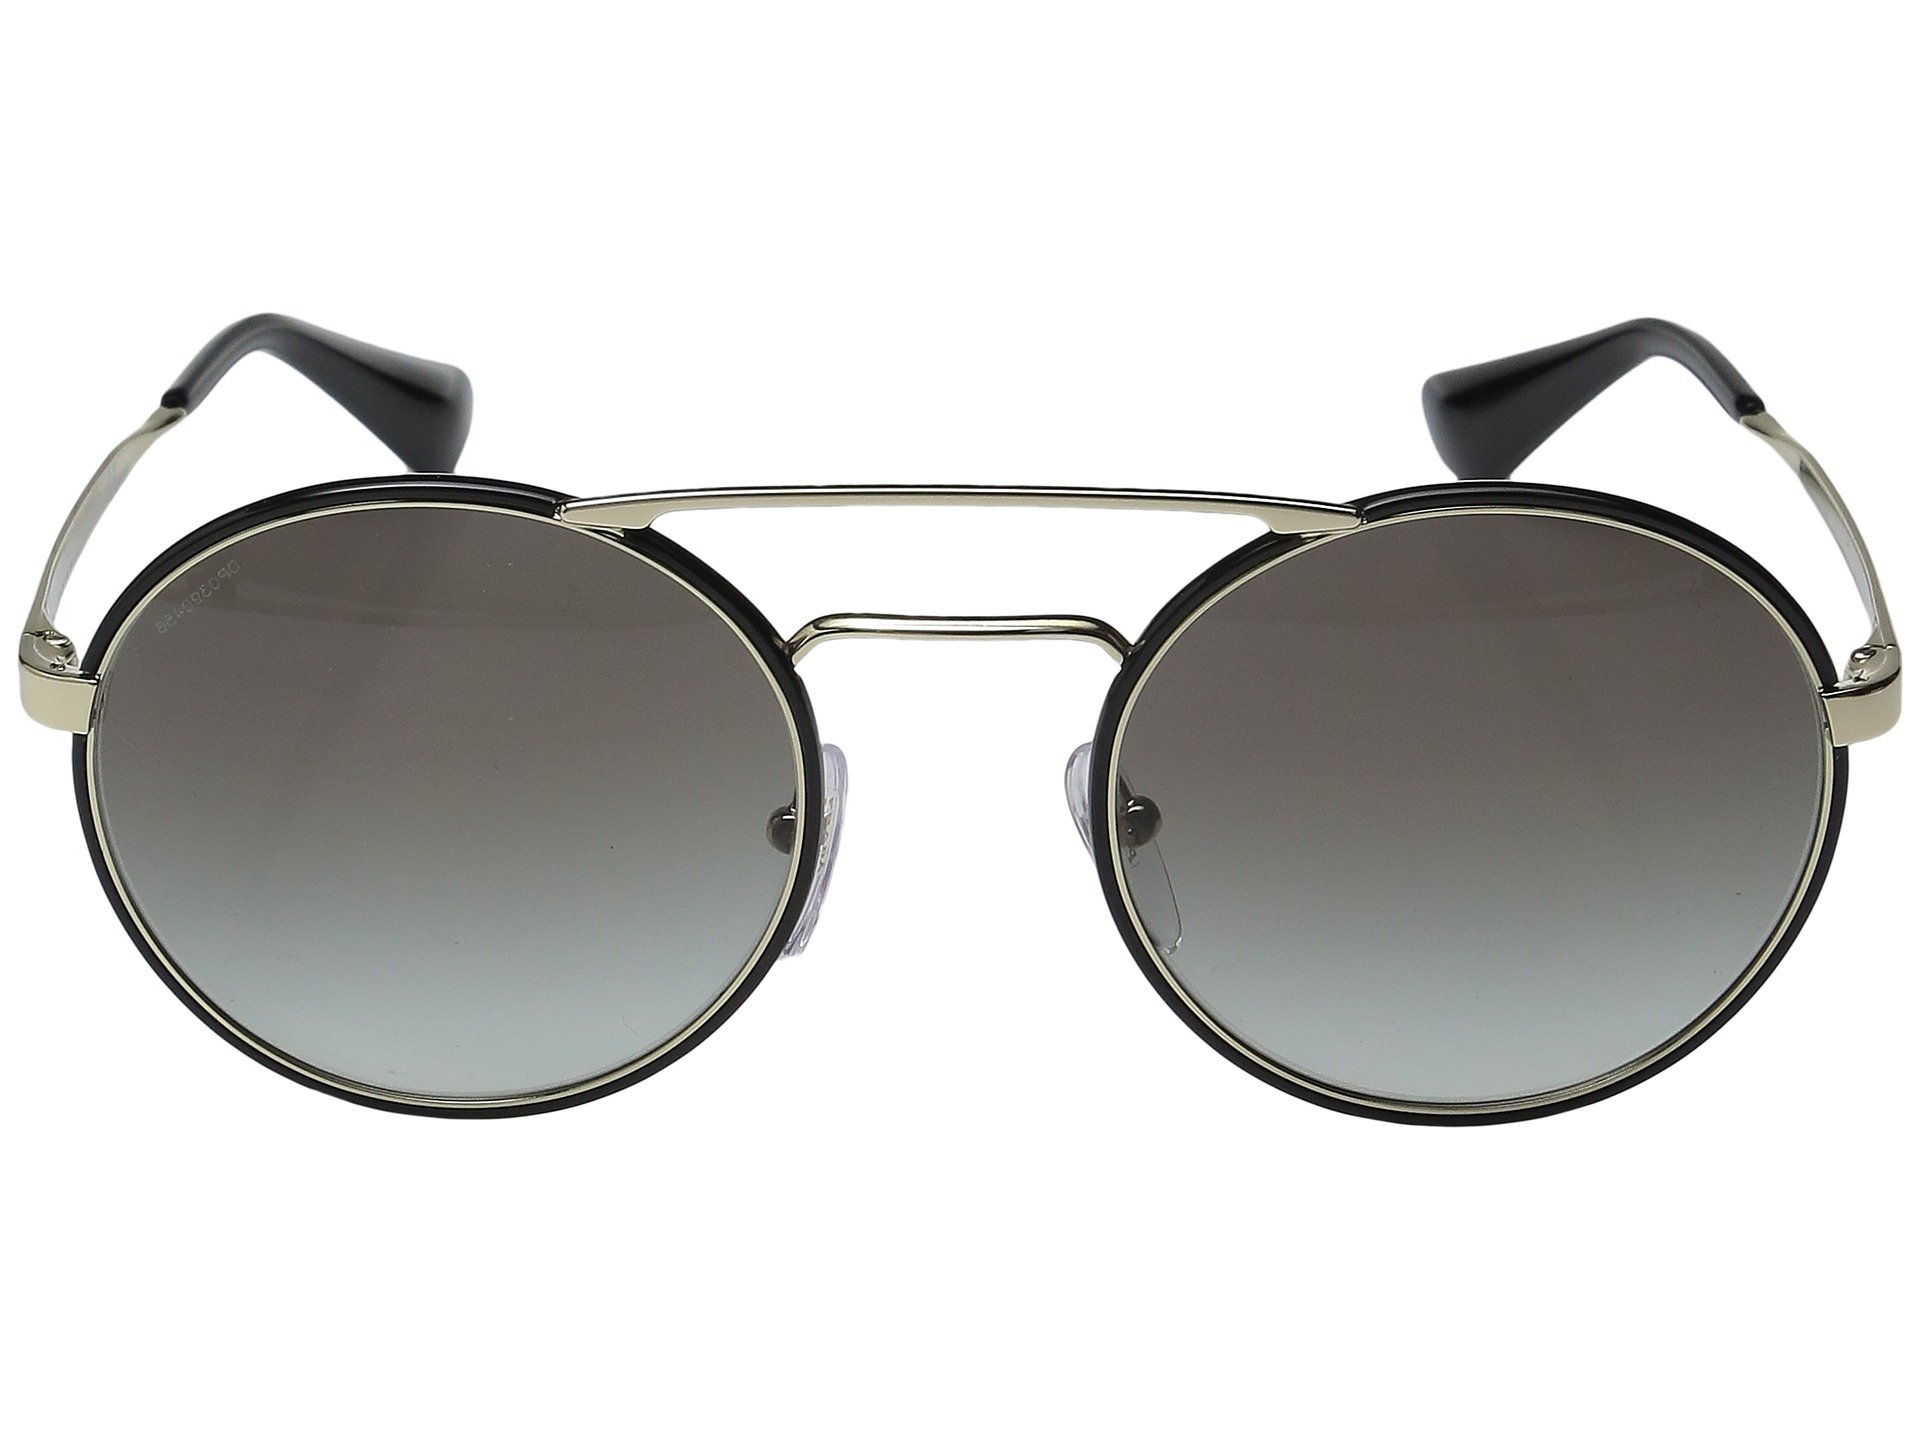 PRADA ROUND BROW-BAR SUNGLASSES, BLACK